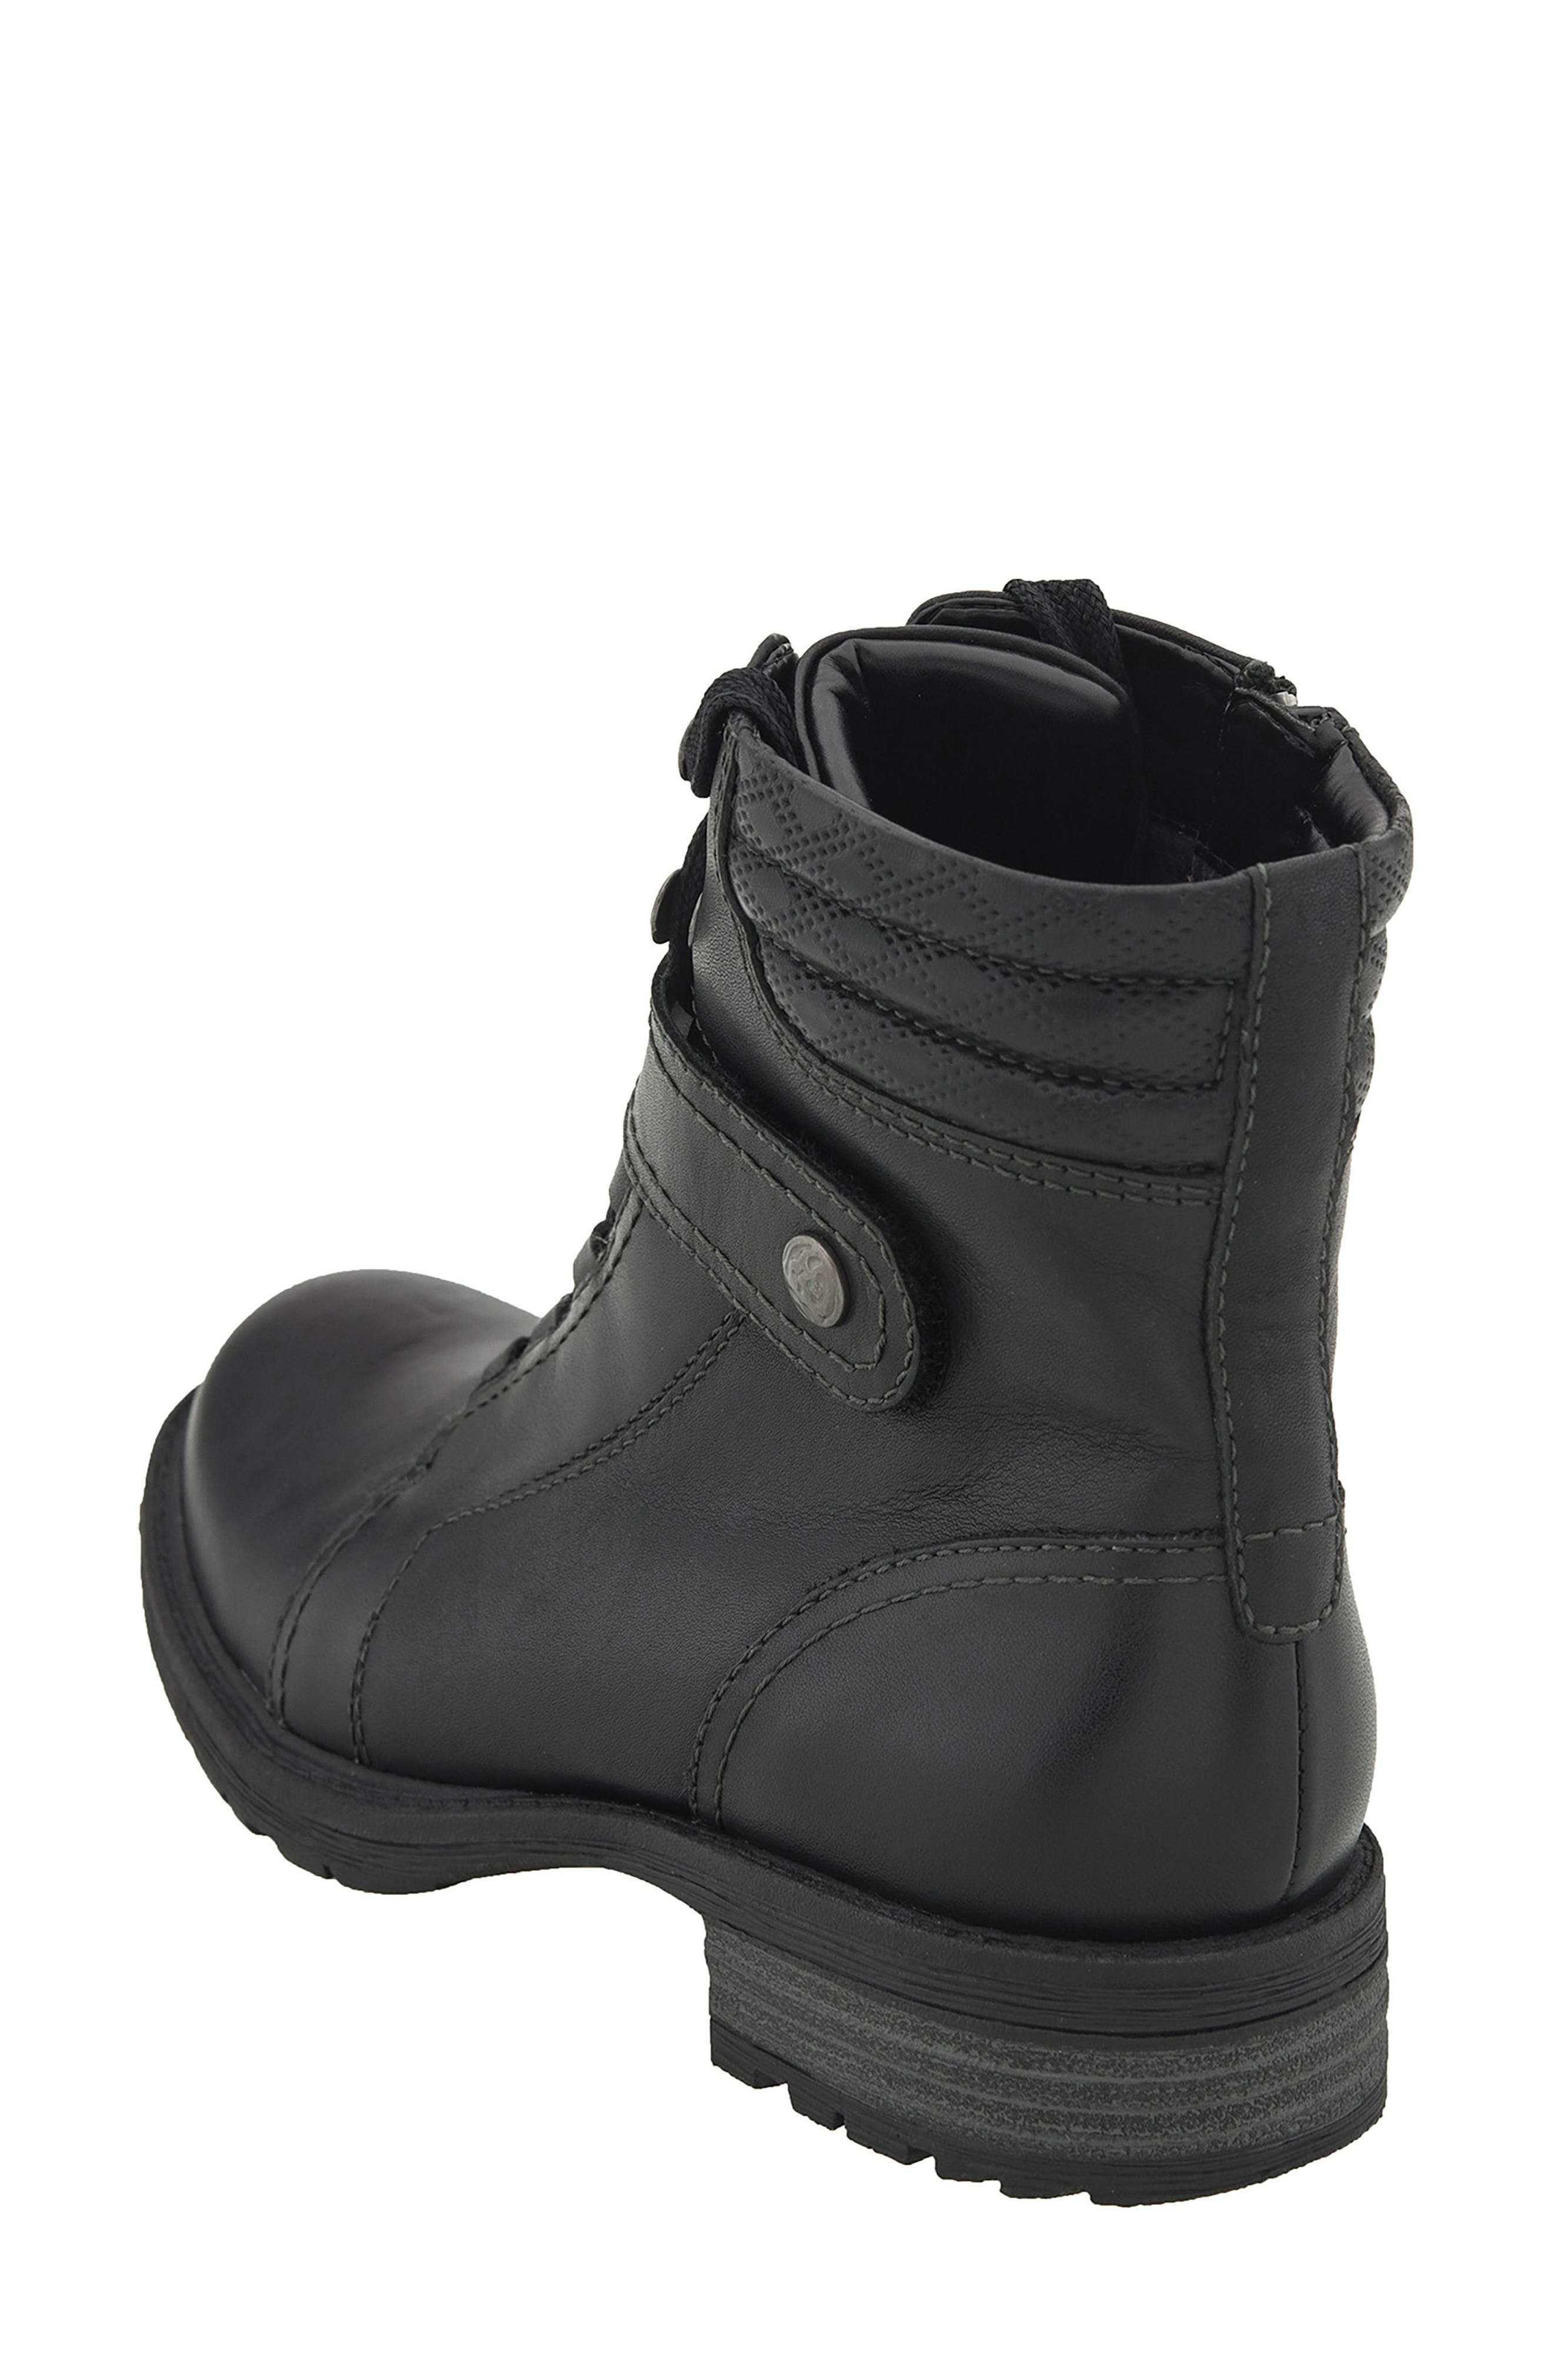 Everest Lace-Up Boot,                             Alternate thumbnail 2, color,                             Black Leather